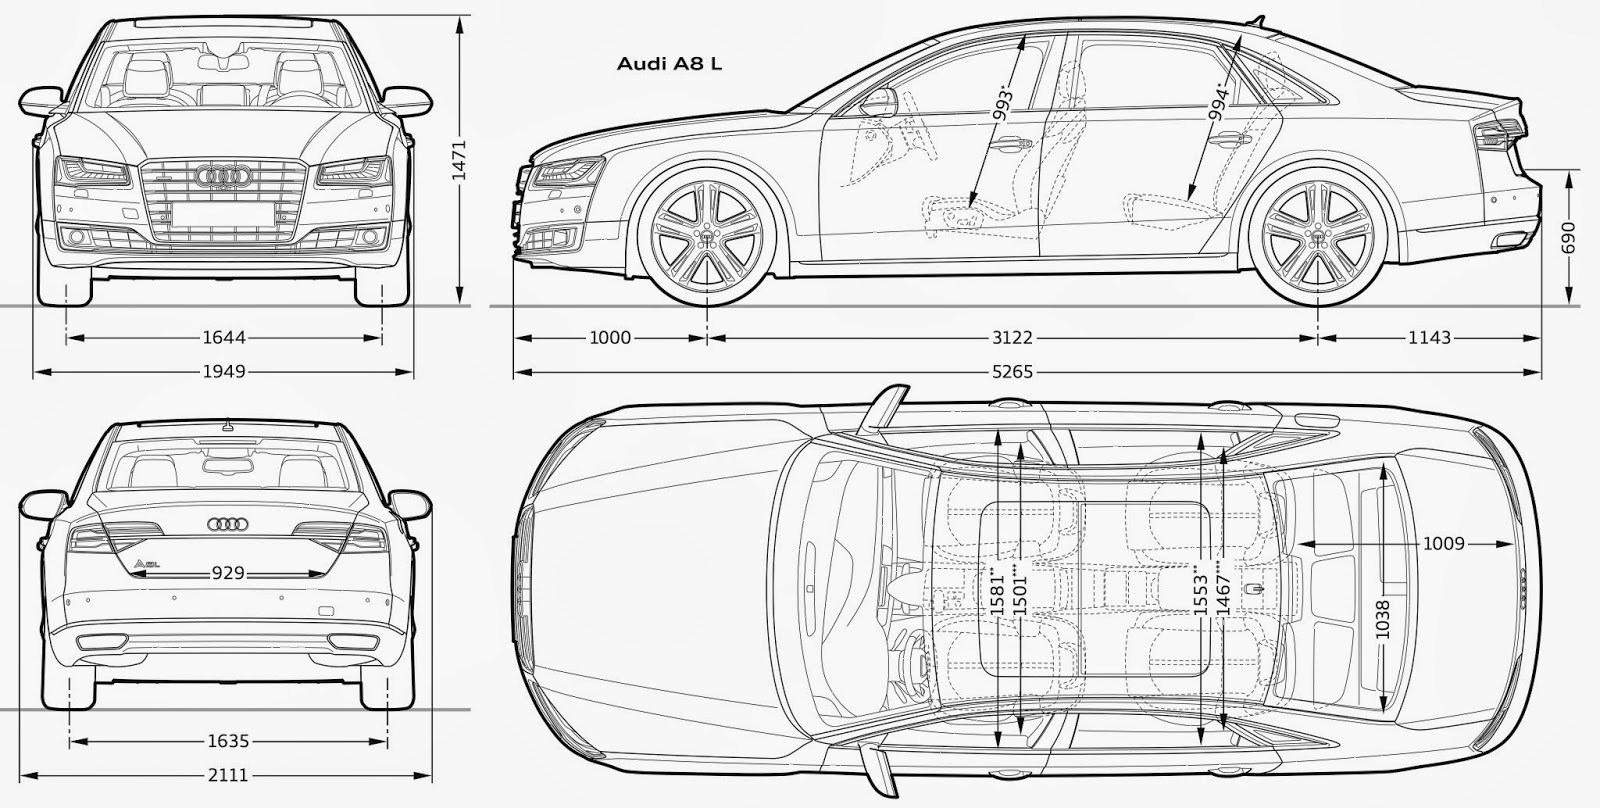 Audi a8 l blueprint download free blueprint for 3d modeling for Where to print blueprints